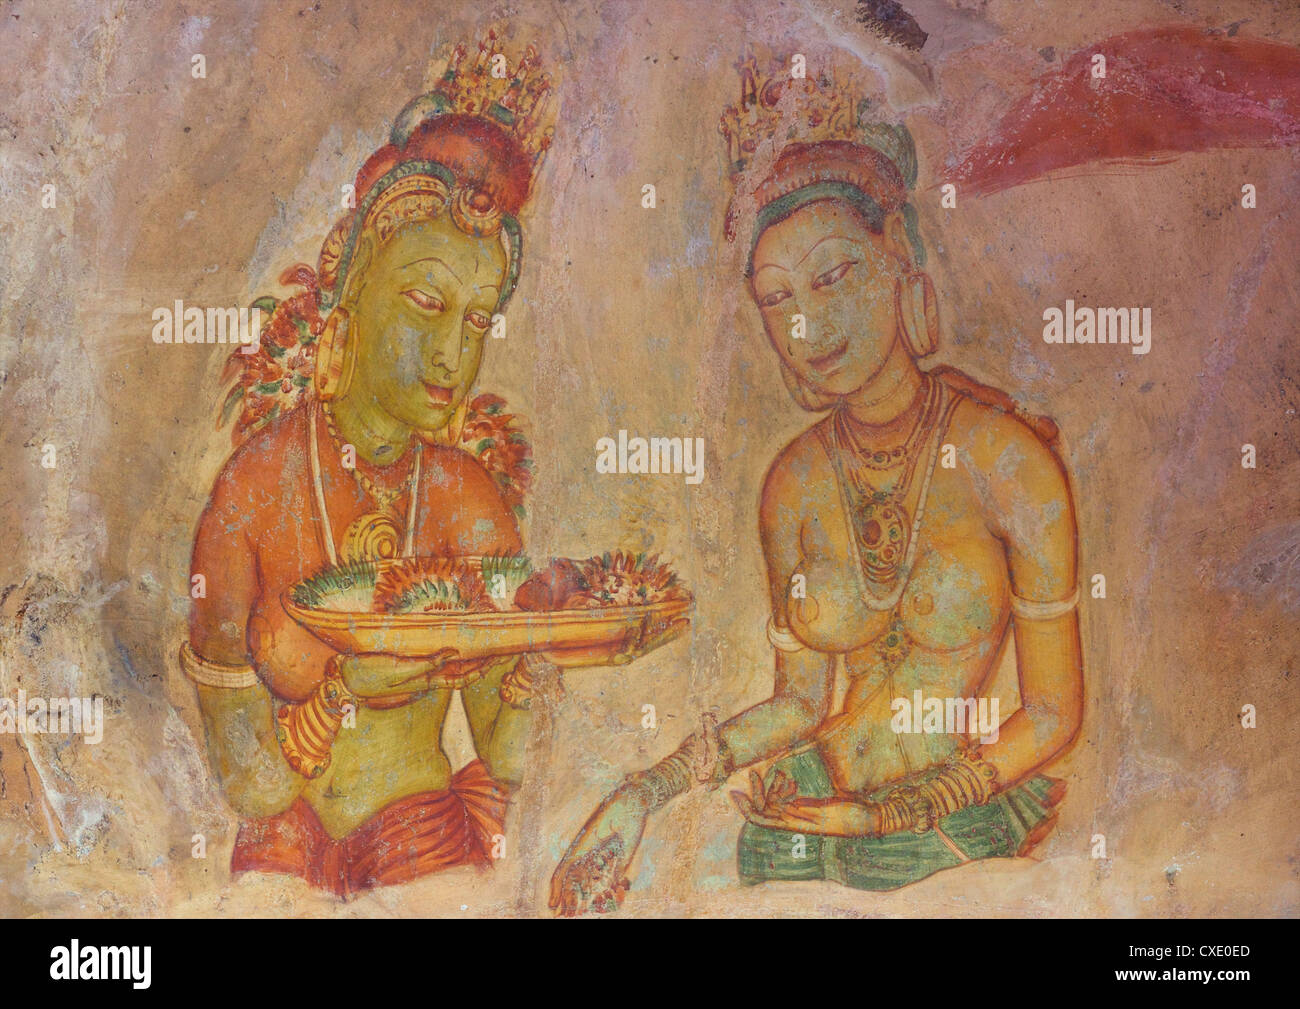 Sigiriya Damsels or Cloud Maidens, 5th century AD,  frescoes, Sigiriya Lion Rock Fortress, Sigiriya, Sri Lanka, - Stock Image